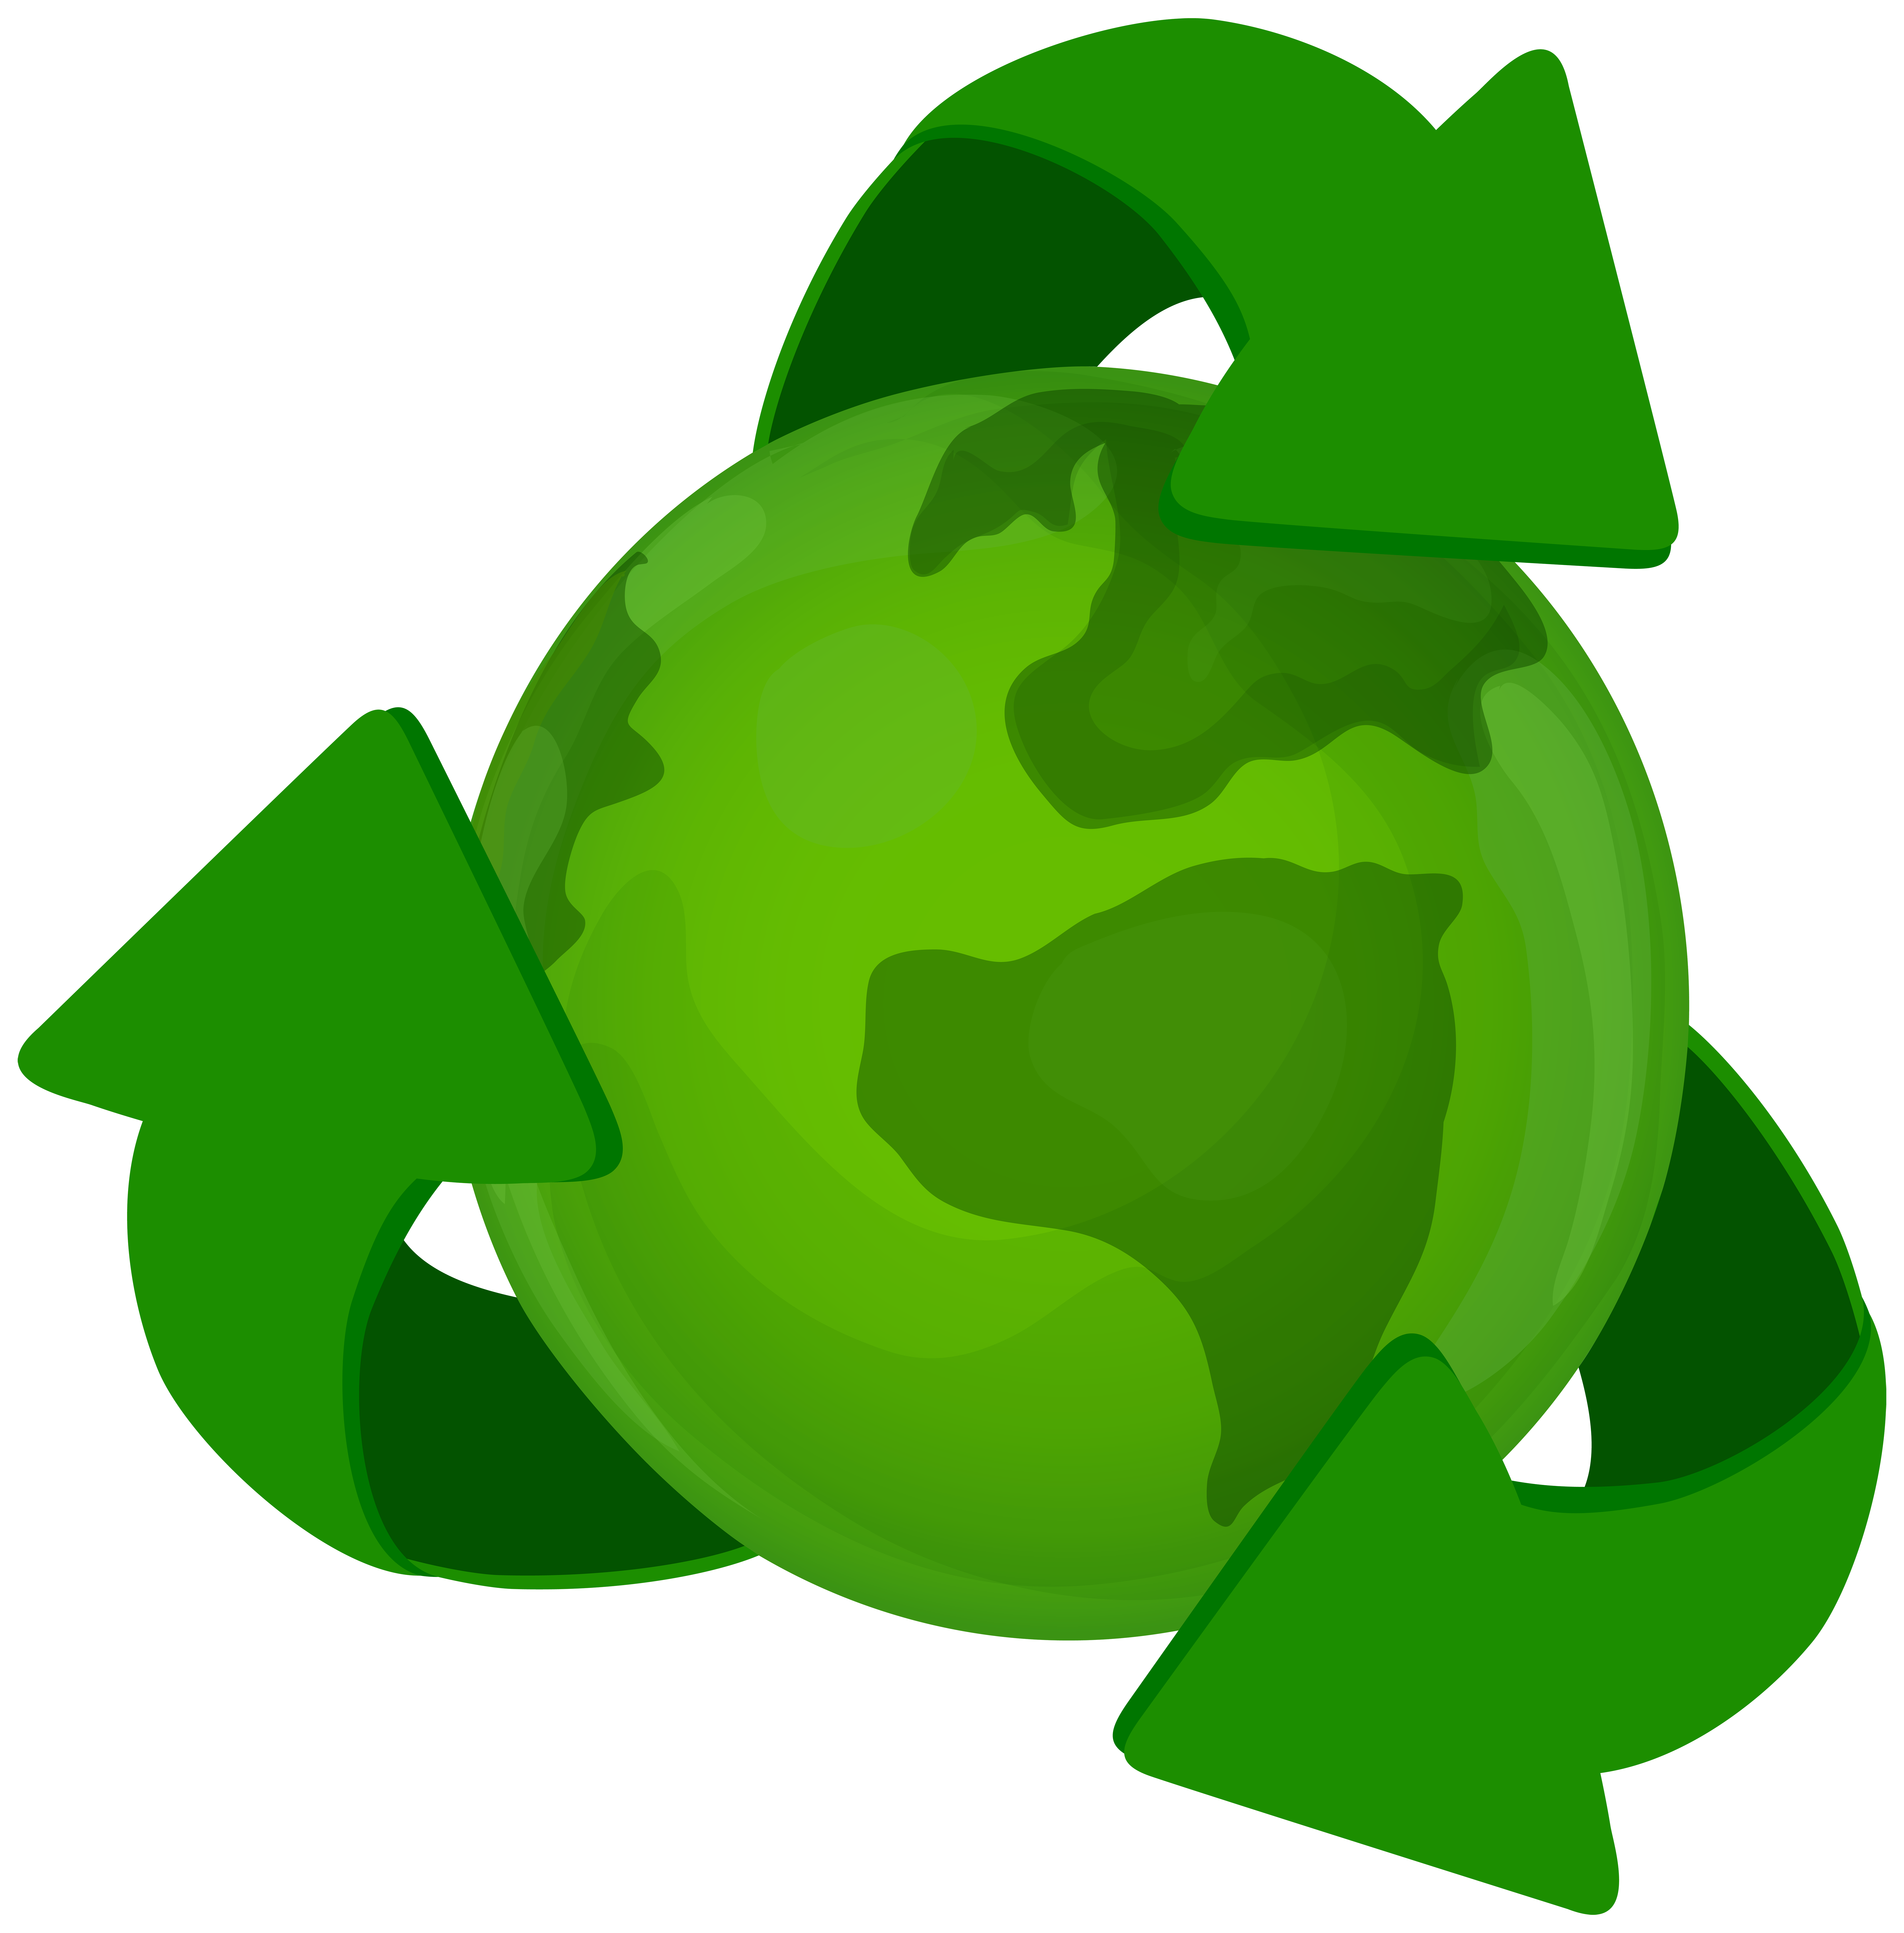 Green earth png. Planet with recycle symbol